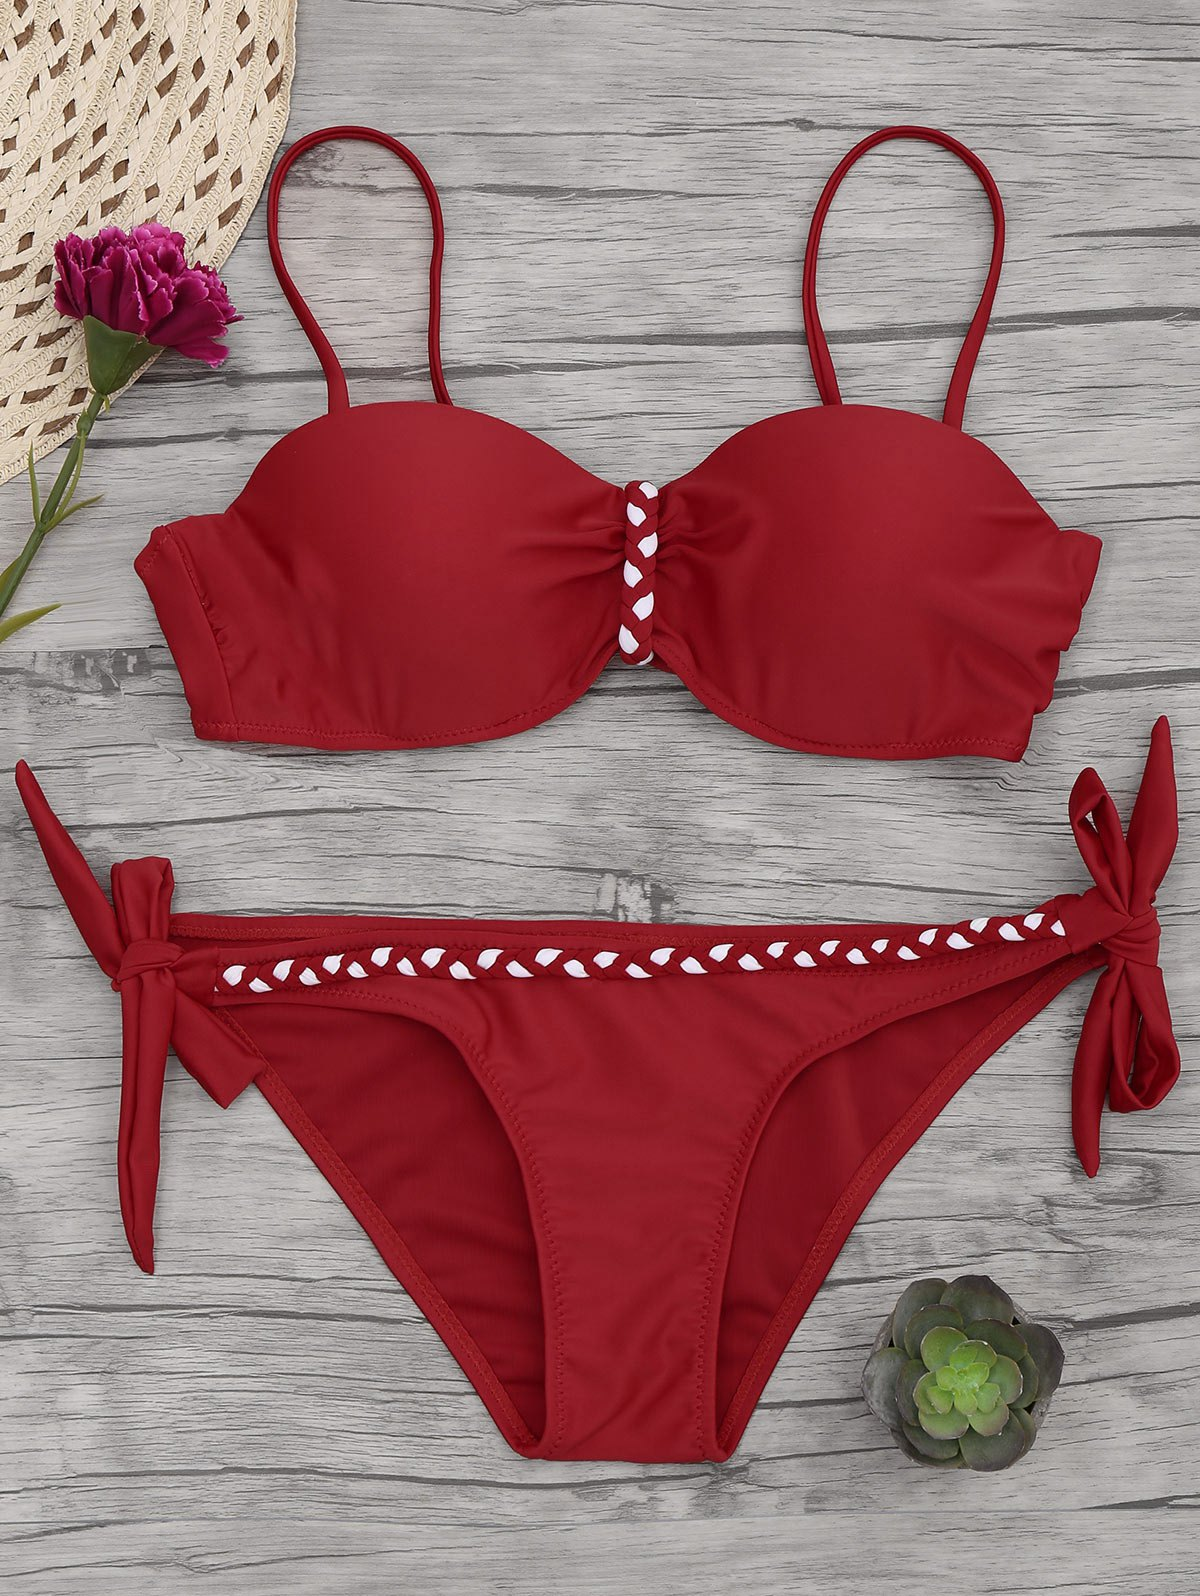 Underwire Braided Molded Cup Bikini Set 213632902